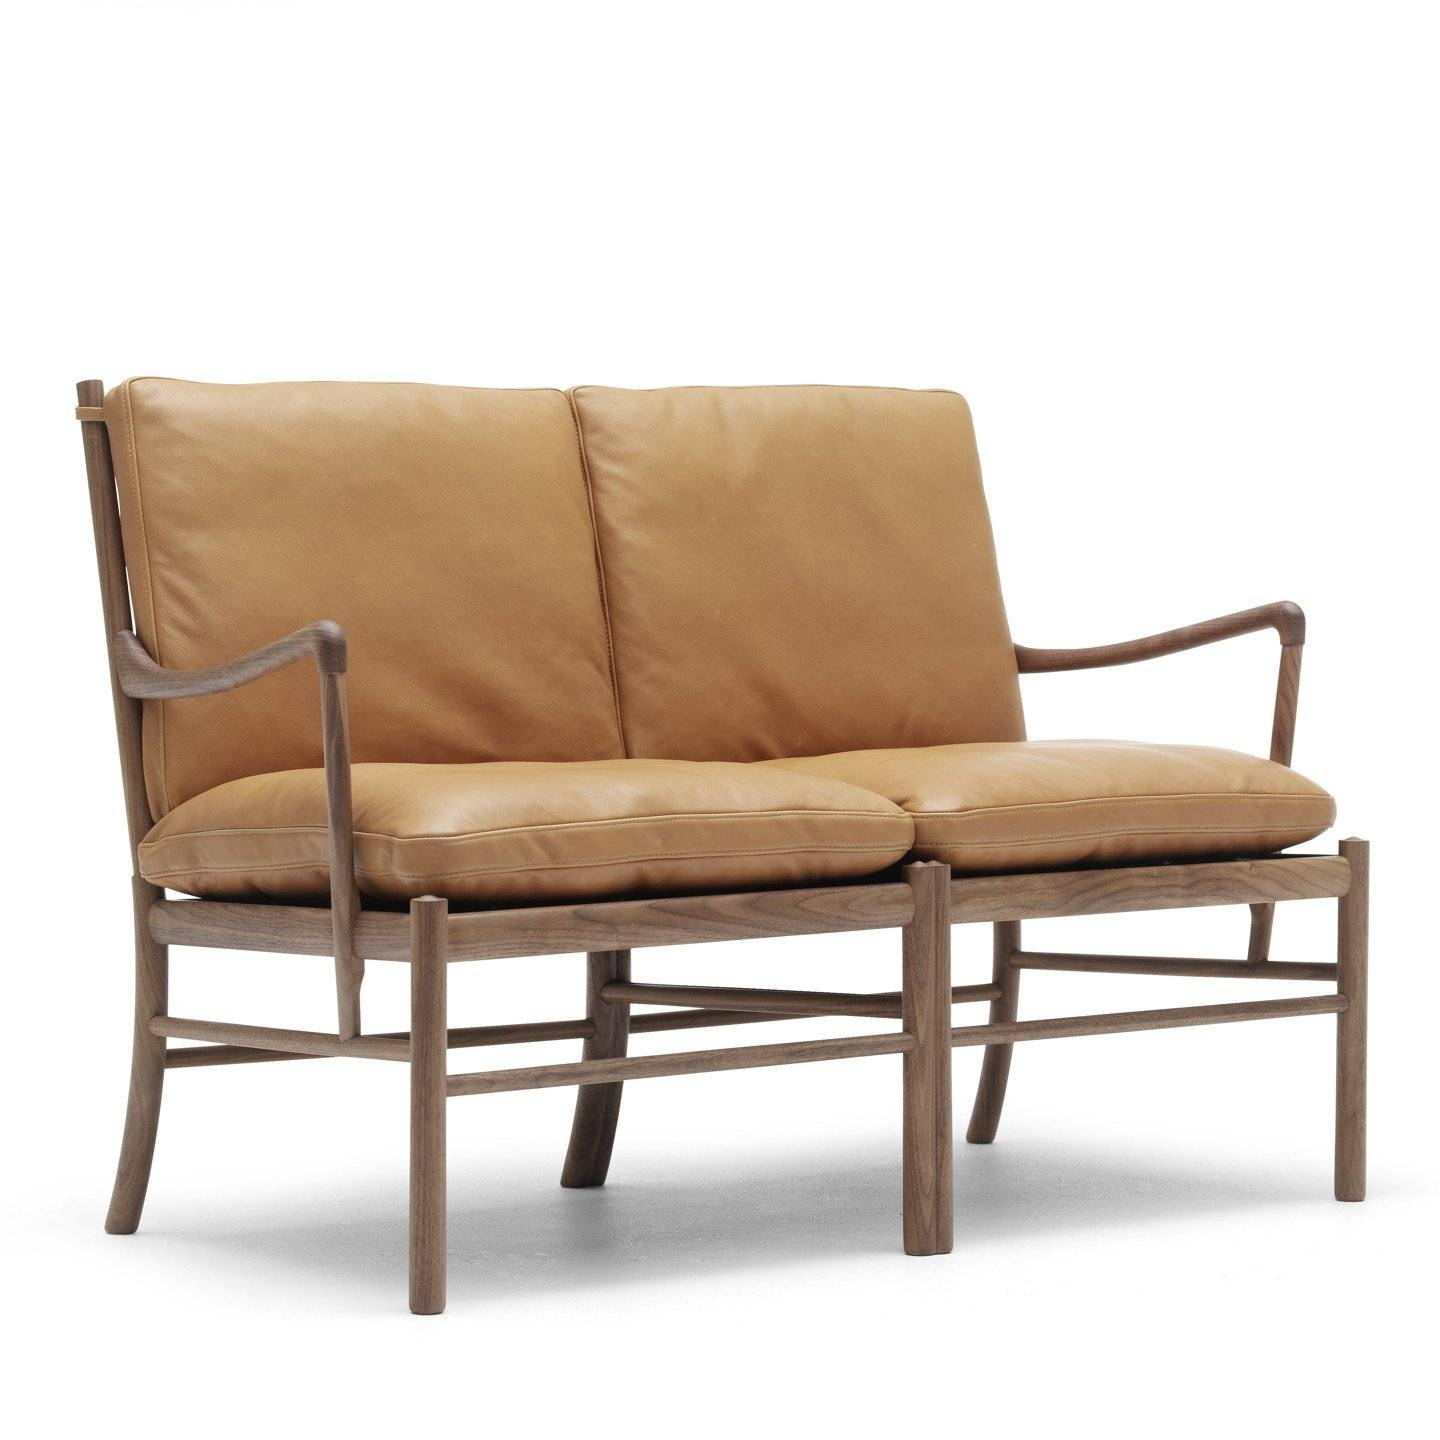 Ow149-2 Colonial Sofaole Wanscher — Haus® in Colonial Sofas (Image 13 of 15)